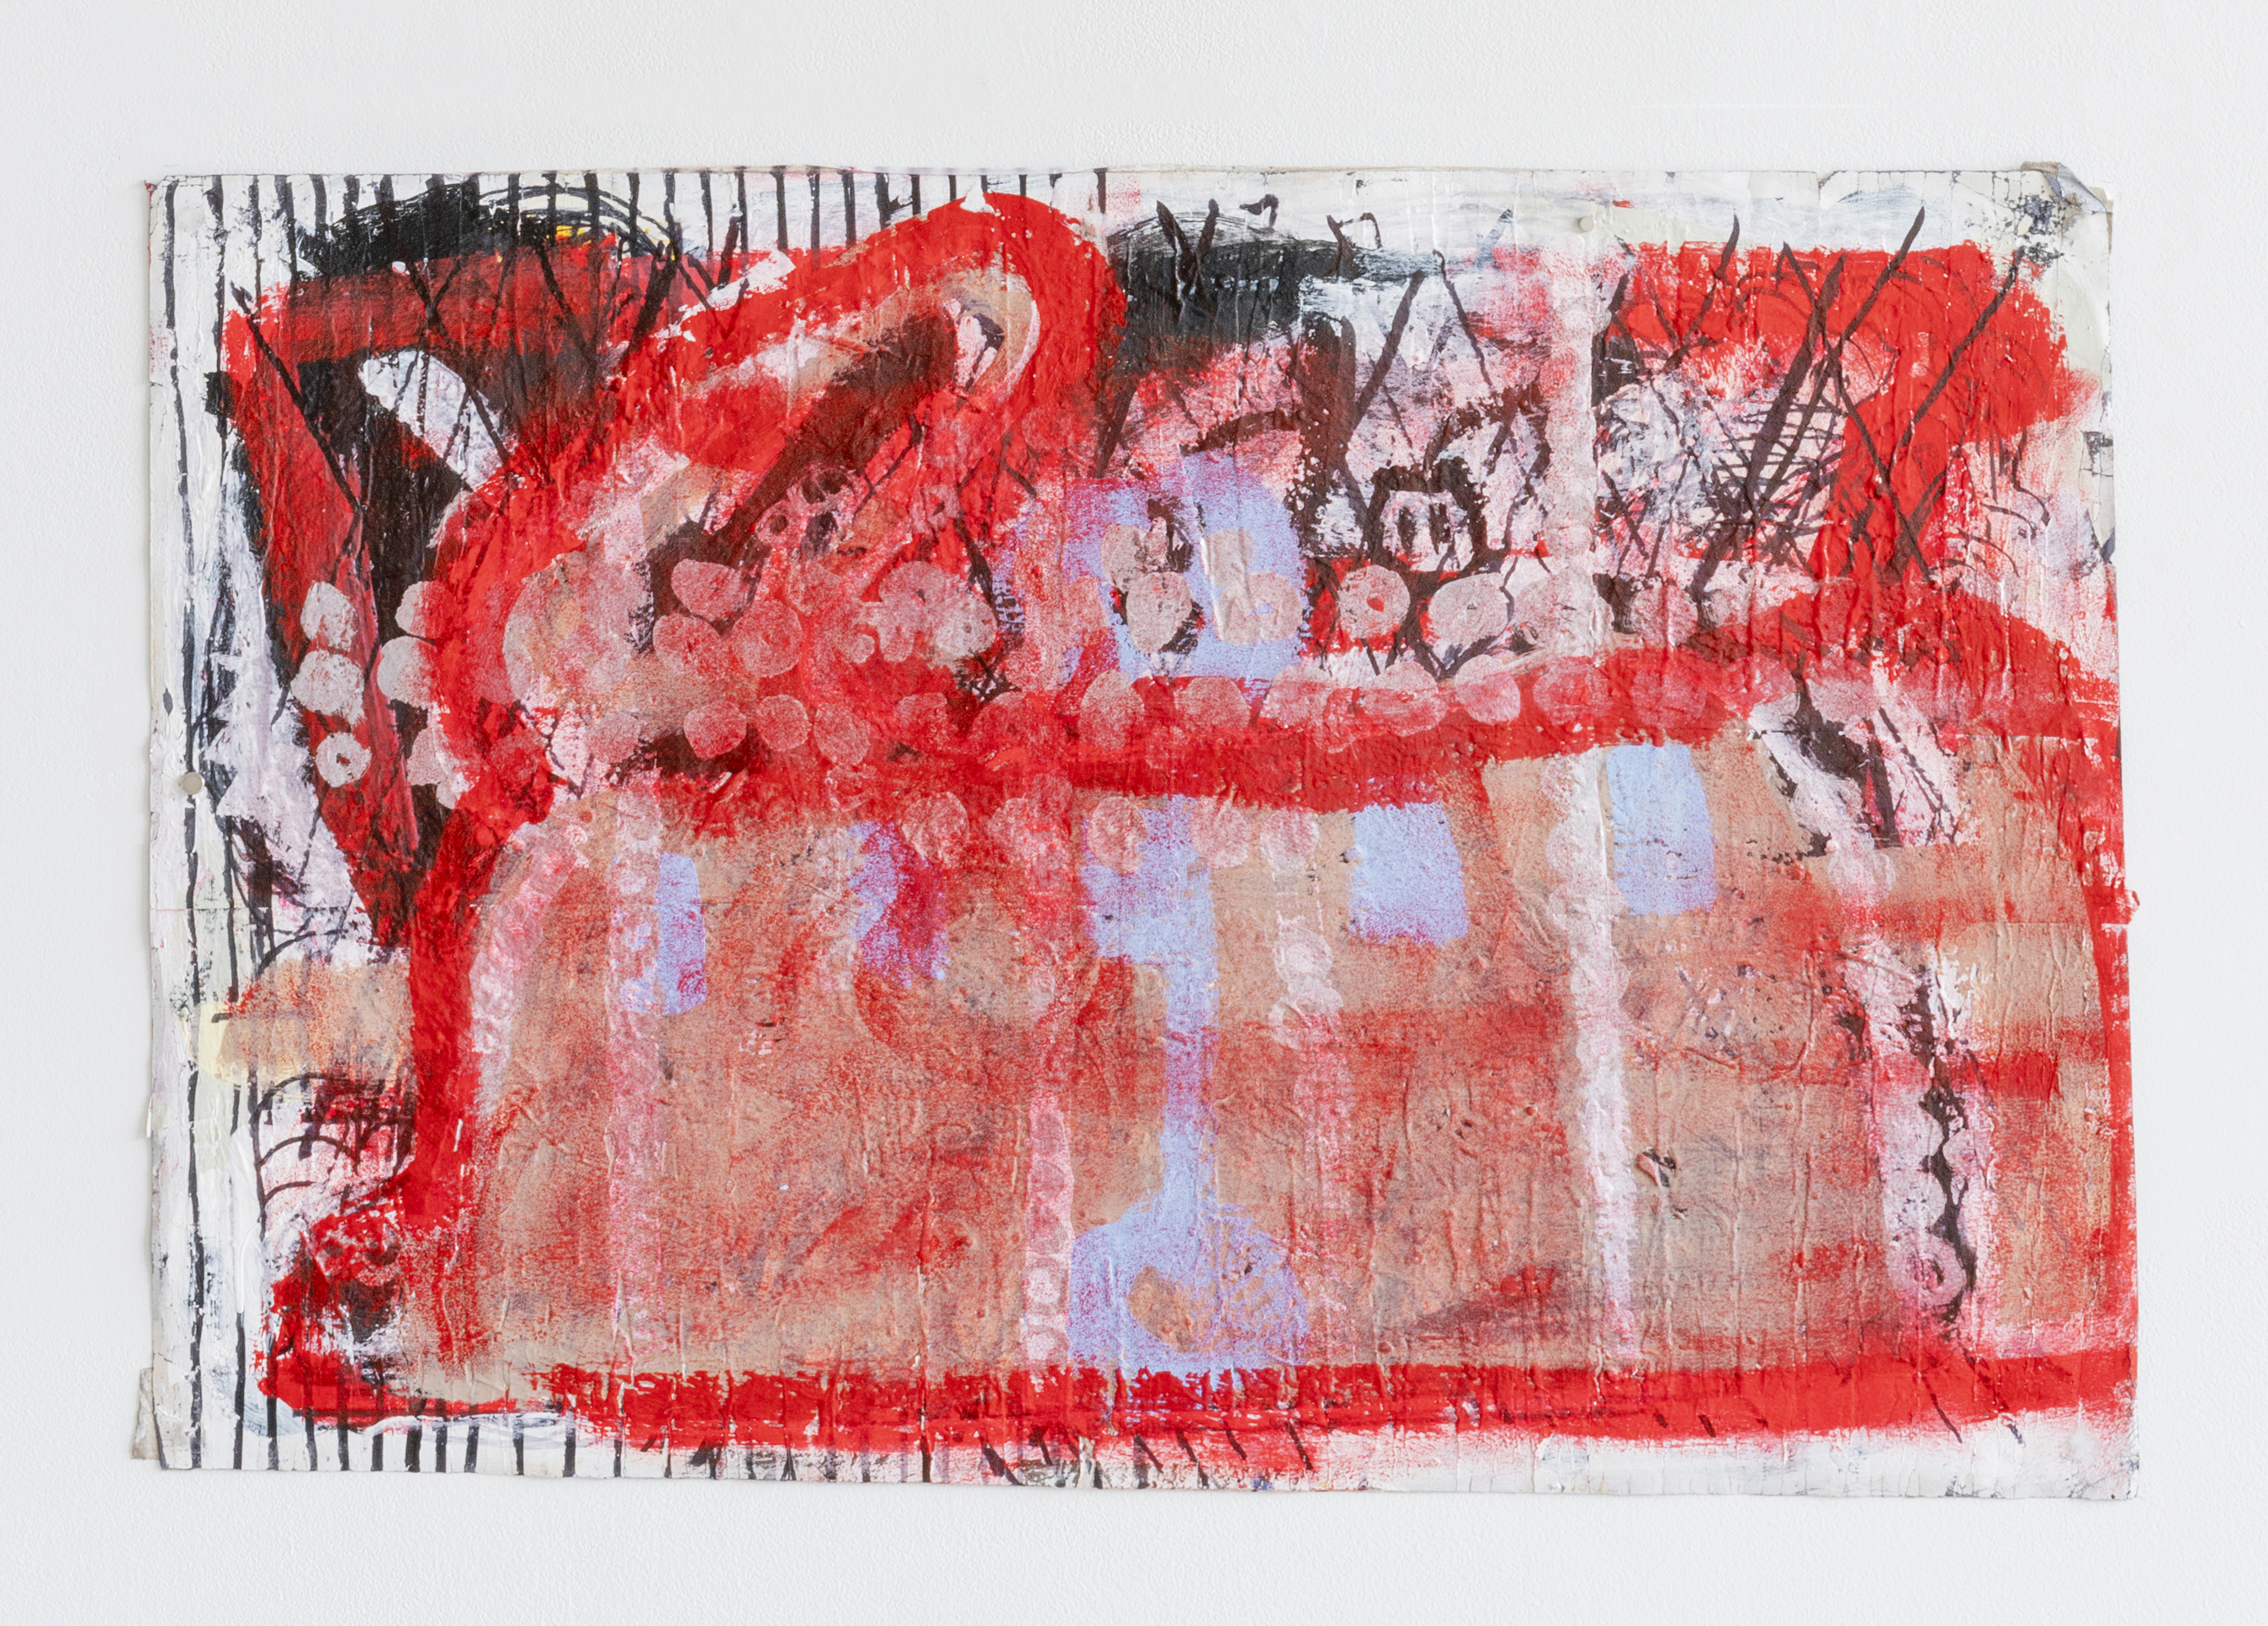 Luchs_Red_Rabbit_3_on_paper_26x40_2020_DESOUSA_GALLERY